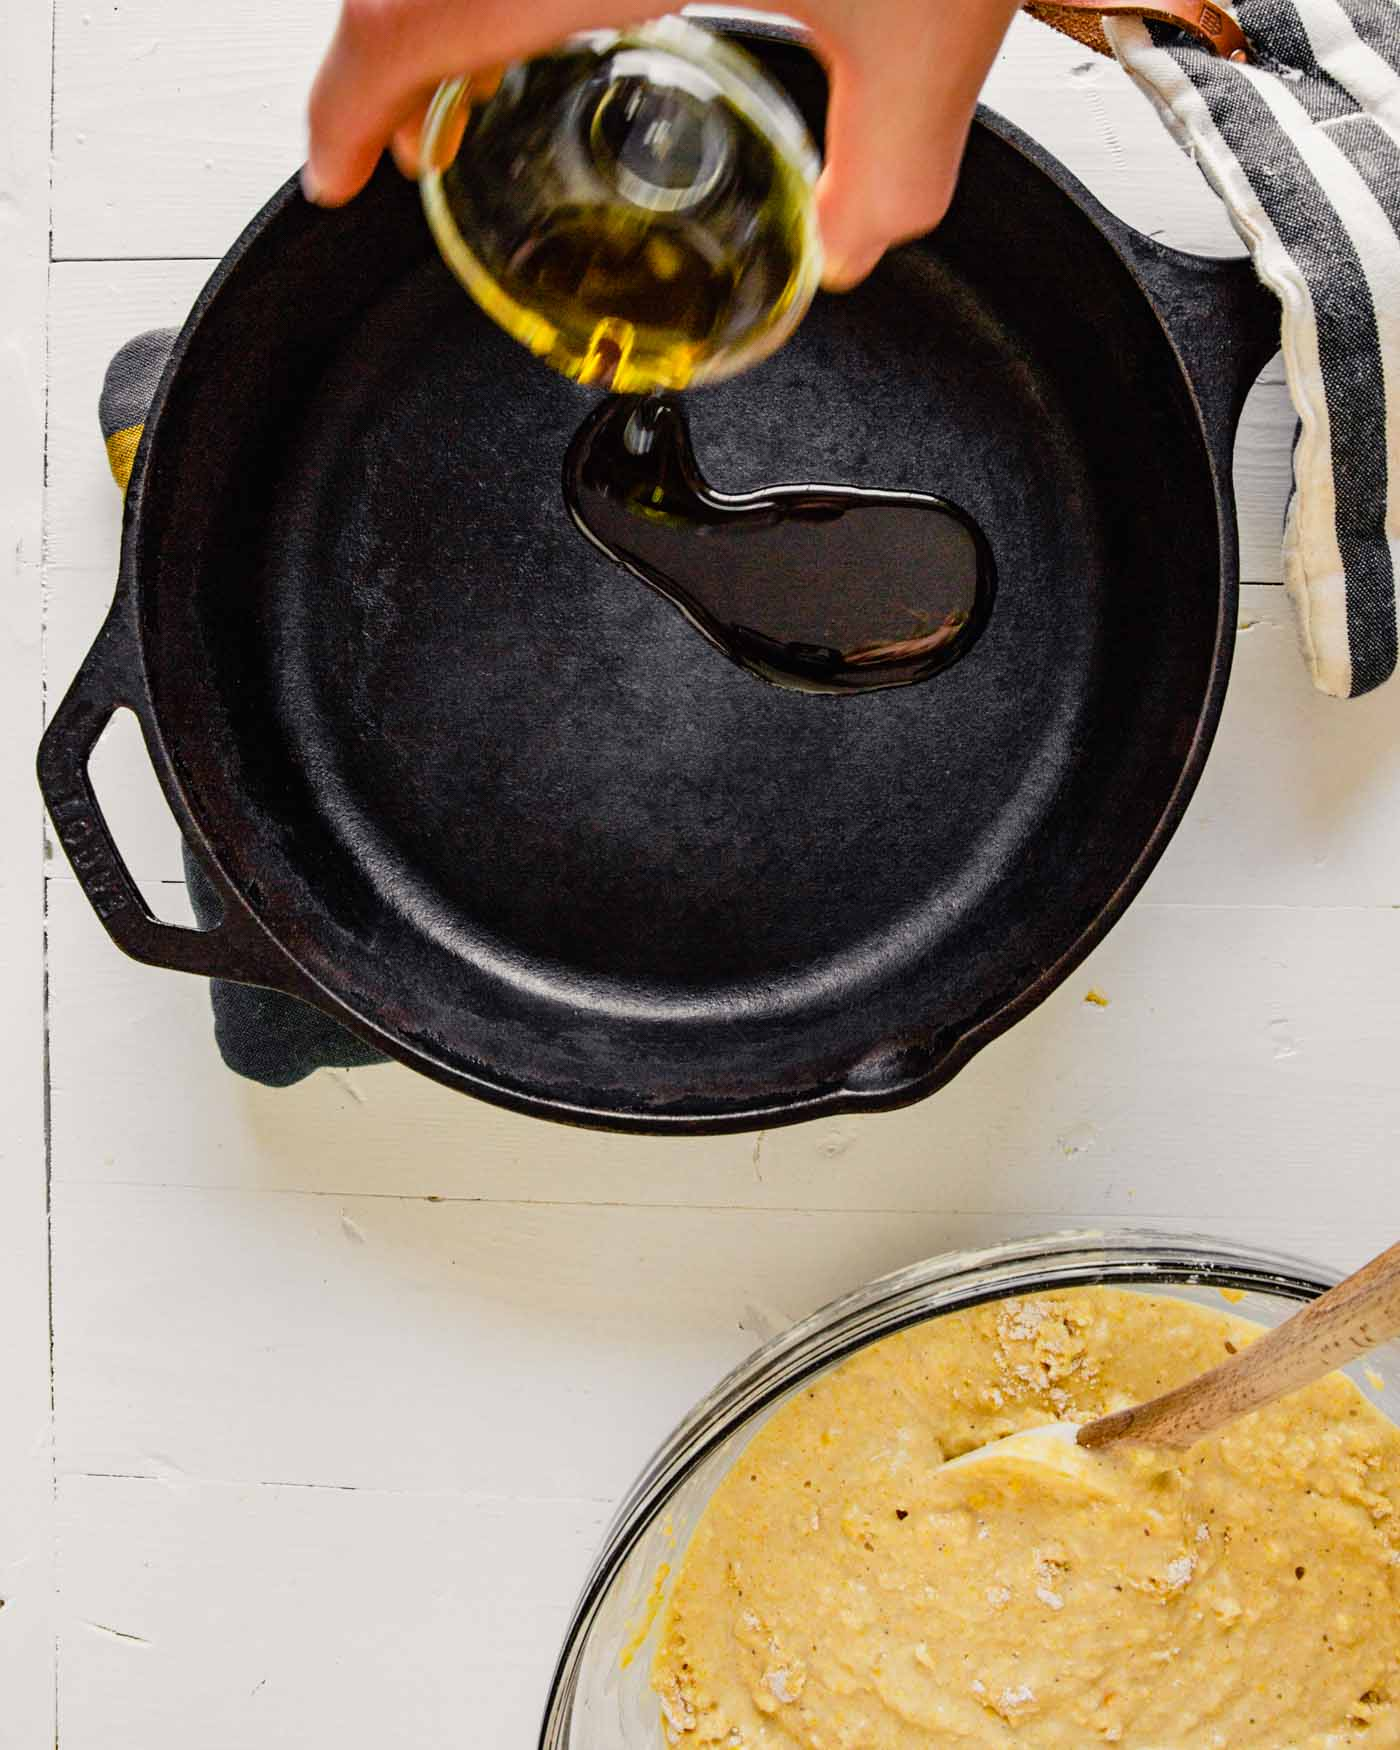 image of oil being poured into a hot cast-iron skillet